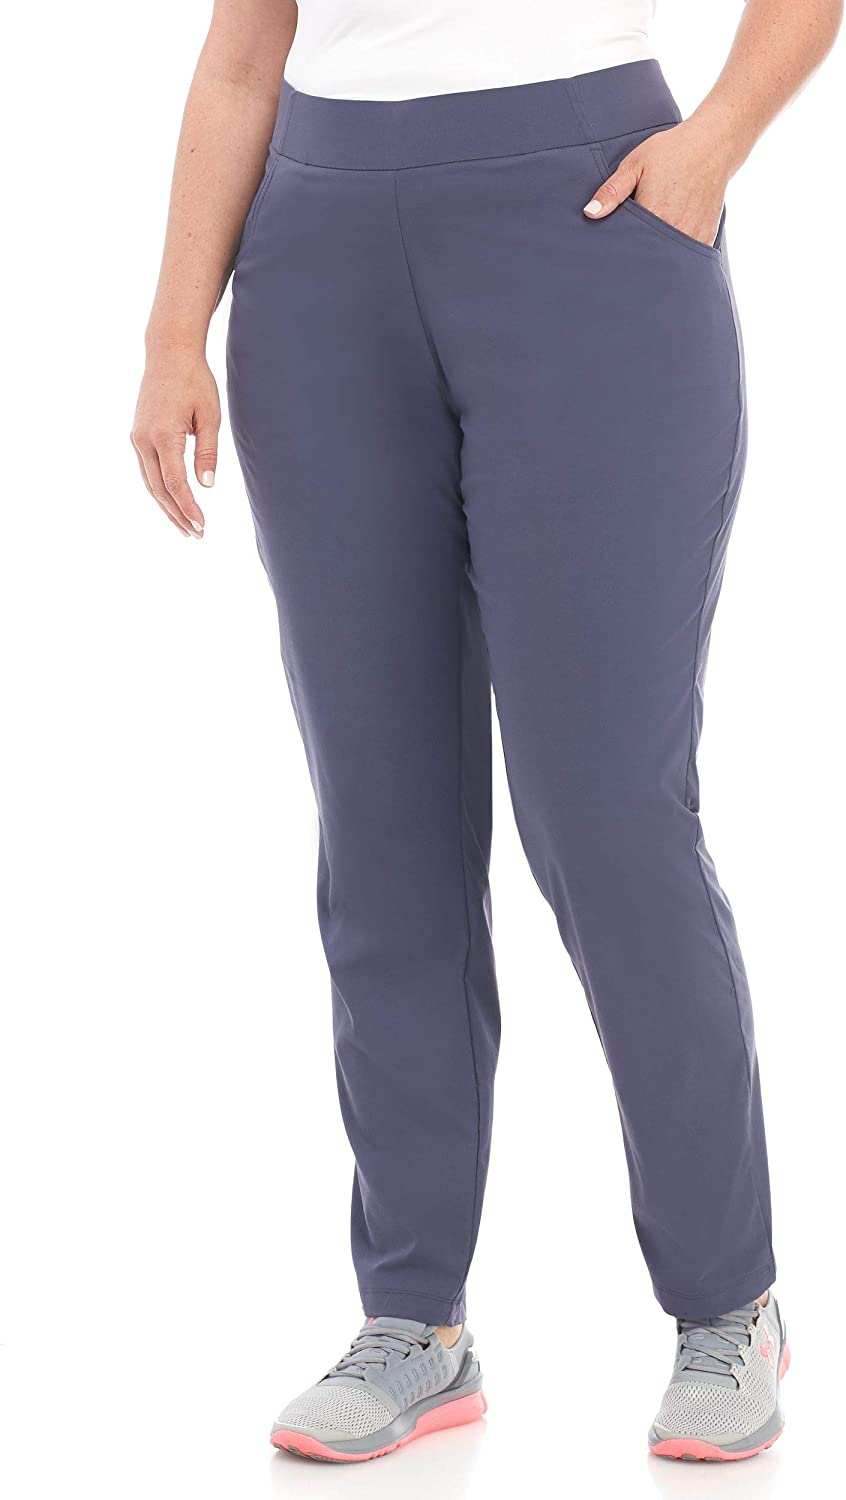 Columbia Women's Plus Size Anytime Casual Pull on Pant